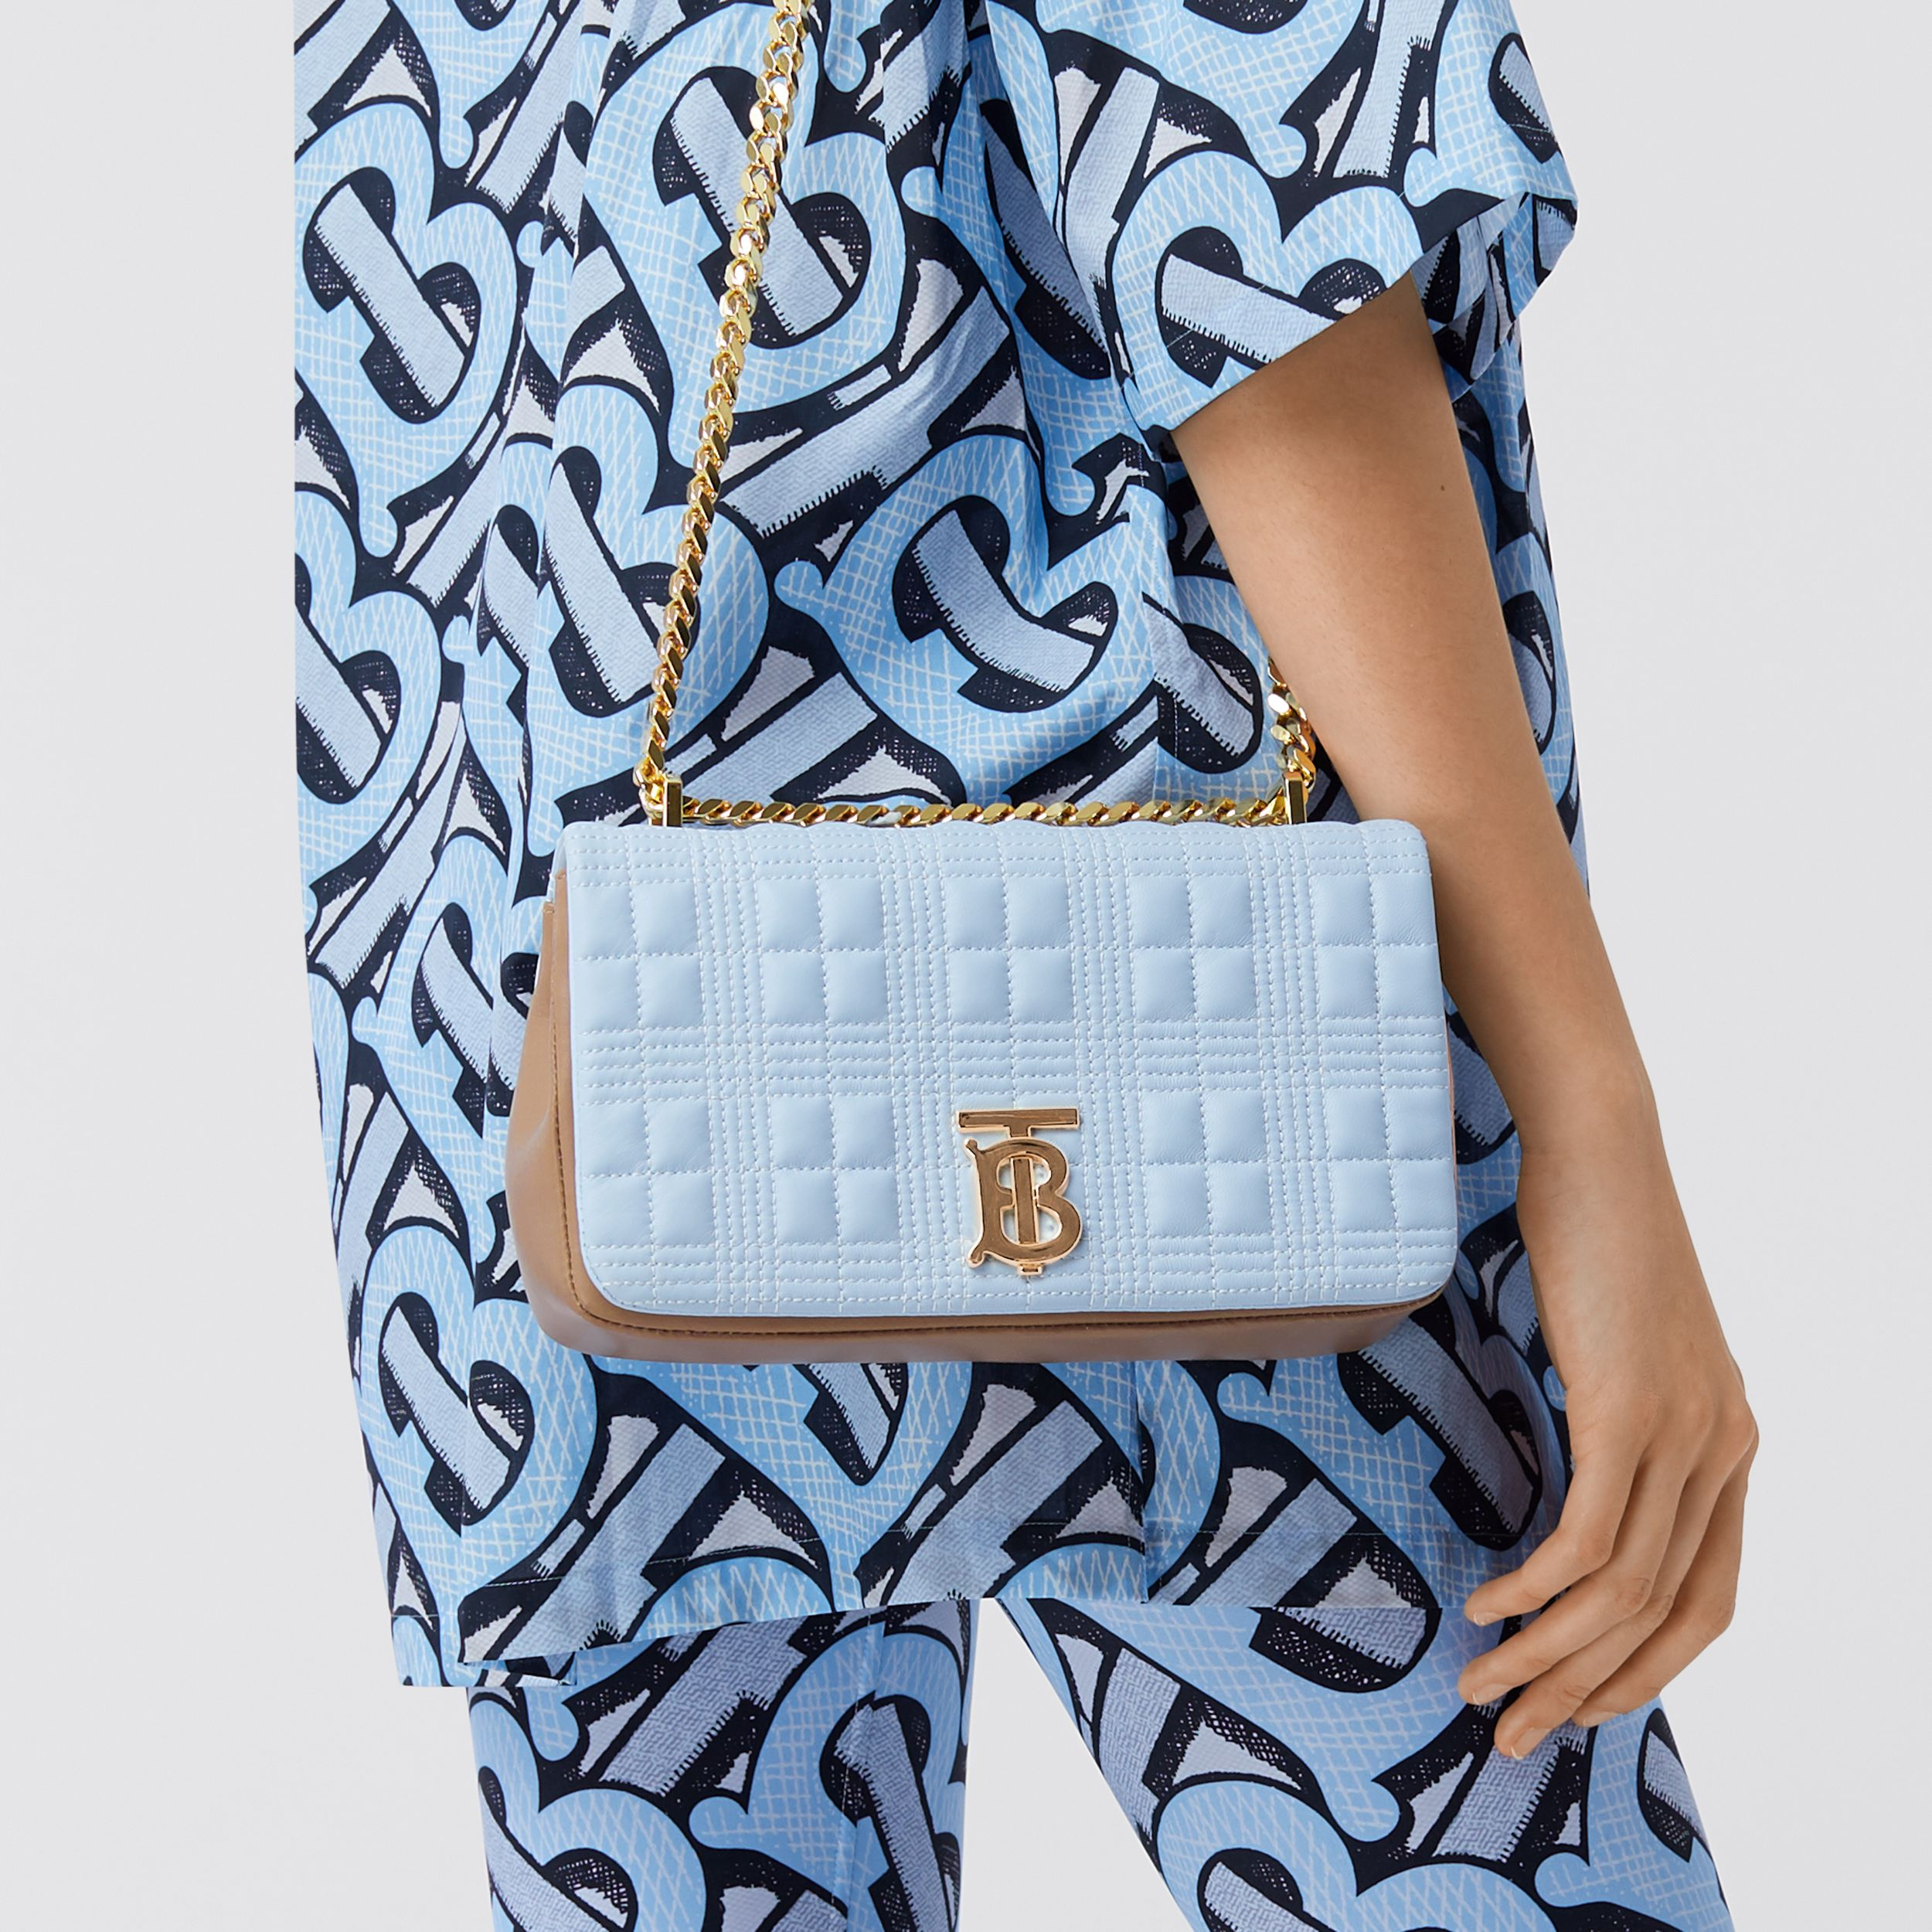 Small Quilted Tri-tone Lambskin Lola Bag in Pale Blue/camel/black - Women | Burberry Singapore - 3